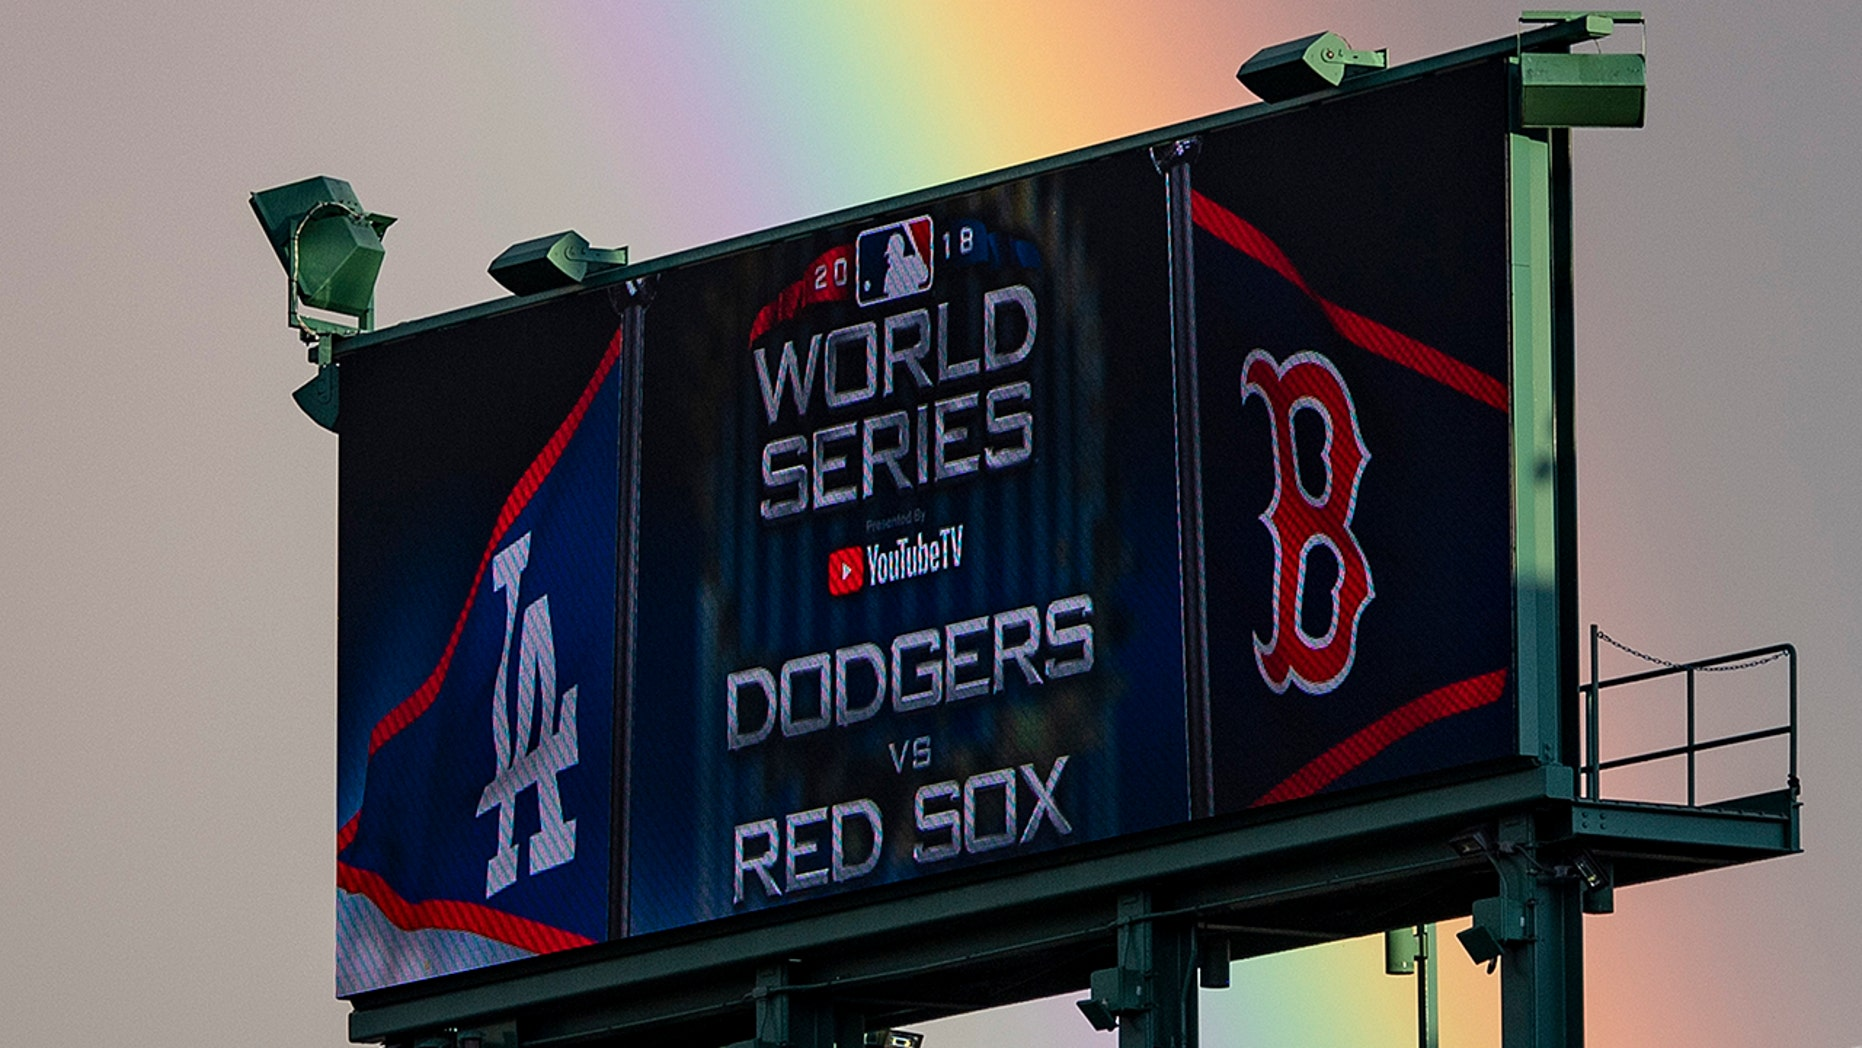 A rainbow forms over Fenway Park before game one of the 2018 World Series between the Boston Red Sox and the Los Angeles Dodgers on October 23, 2018 at Fenway Park in Boston, Massachusetts.